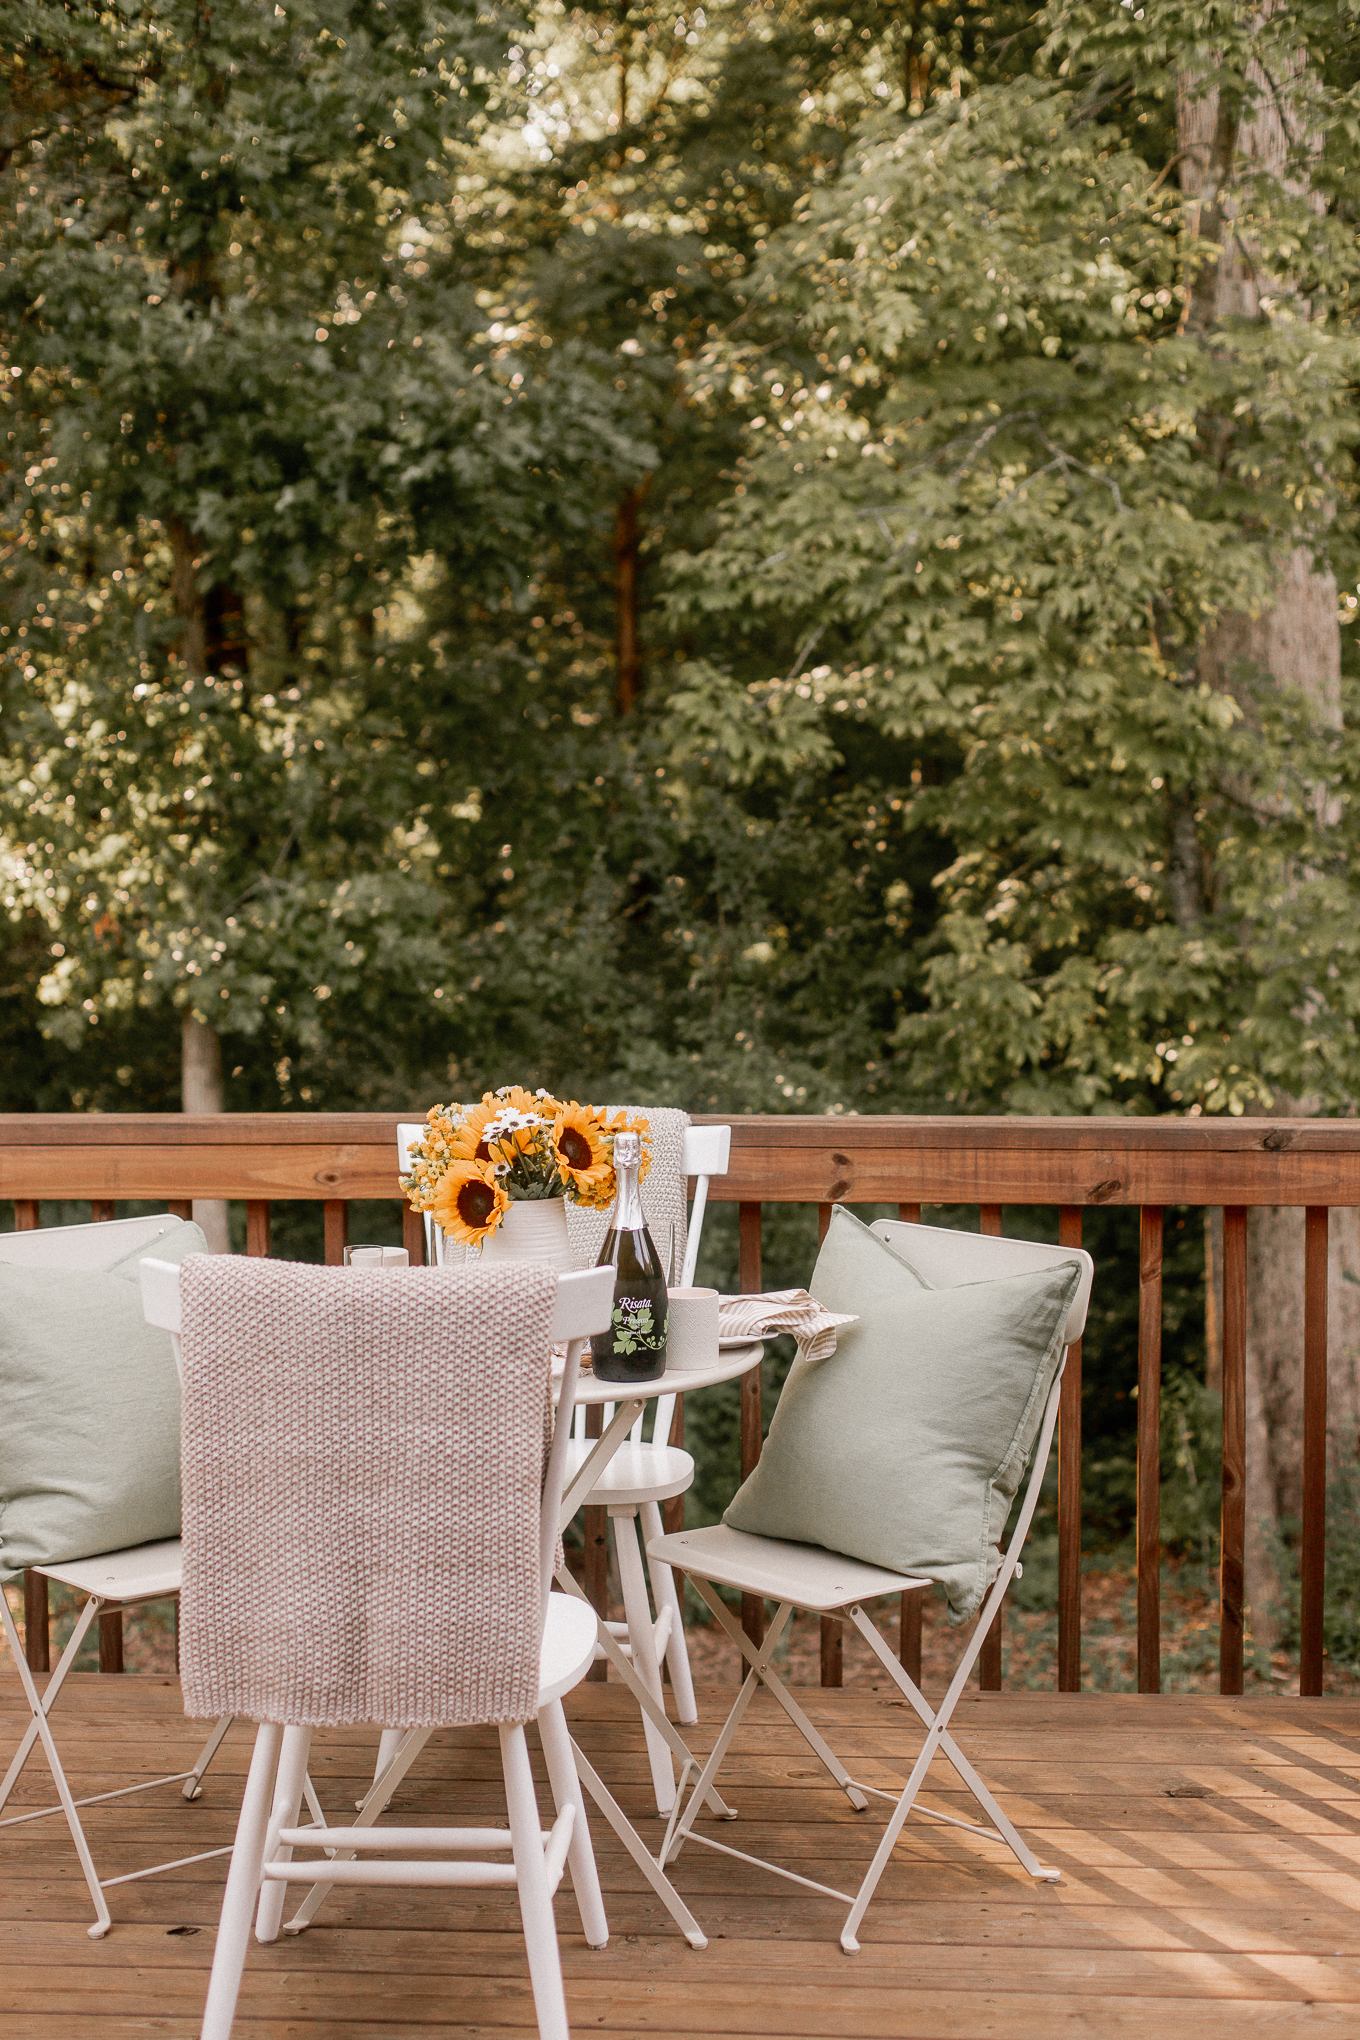 Late Summer Soiree with a Farmer's Market Menu